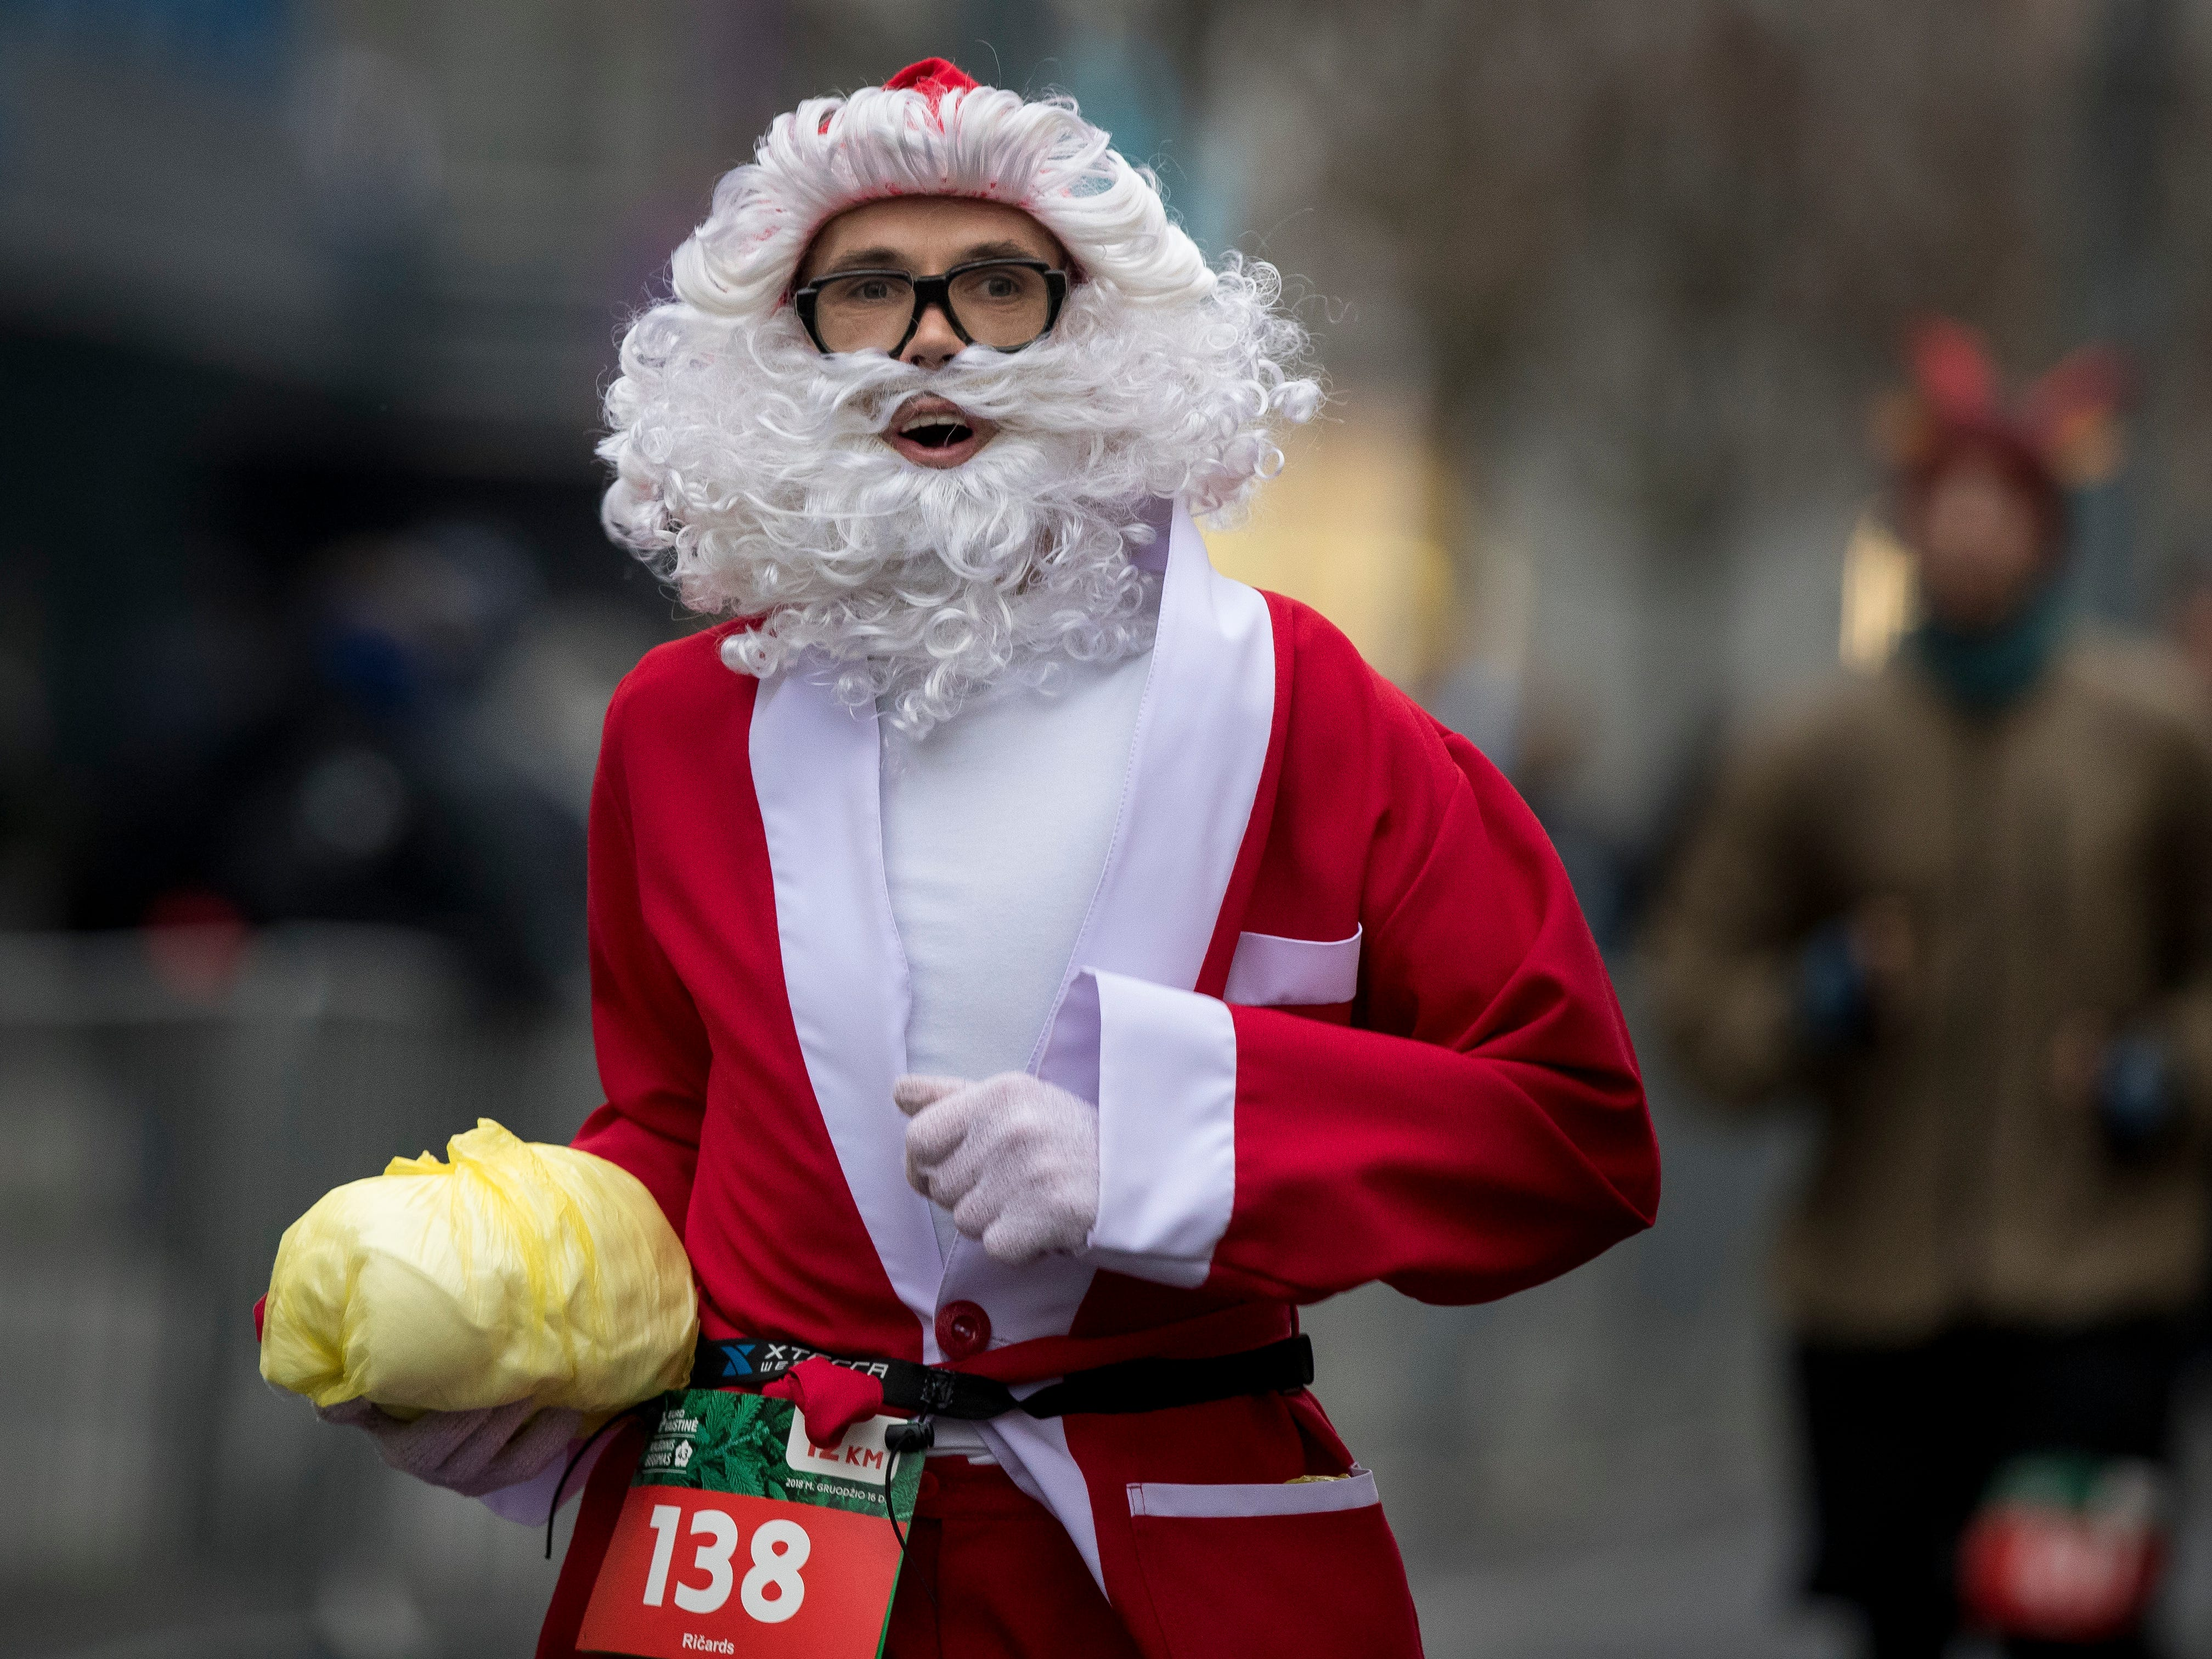 A man dressed like Santa Claus take part in the traditional seasonal Christmas run along the streets of Vilnius, Lithuania, Dec. 16, 2018. The festive run attracts many hundreds of people to the capital dressed as Santa Claus to take part in the sporting event.